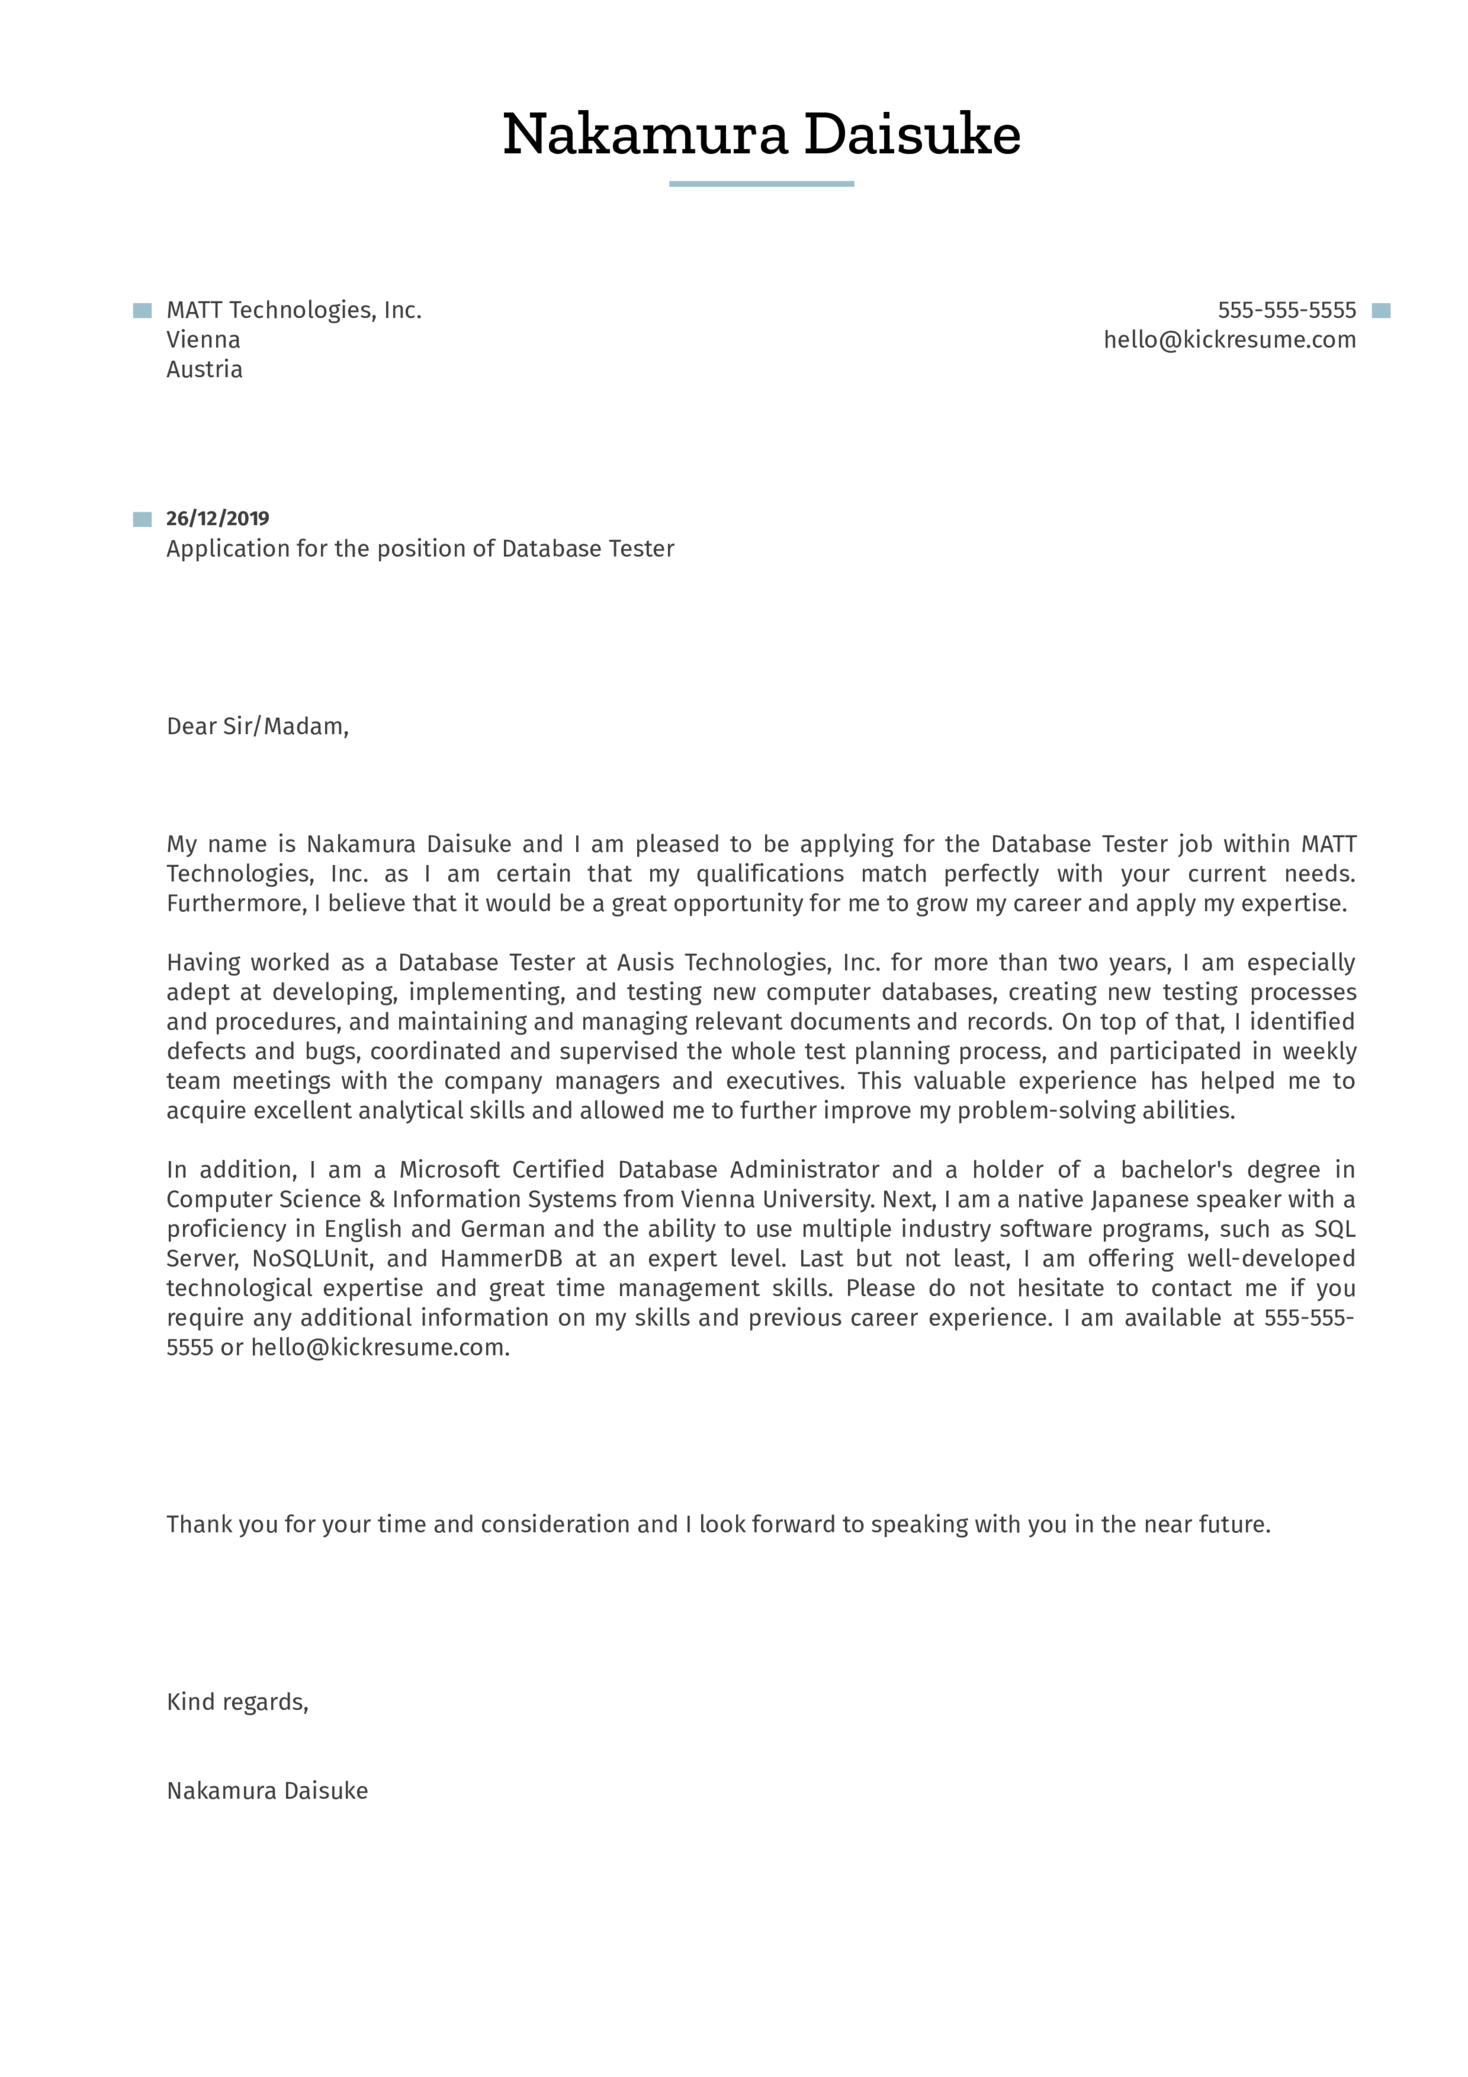 Database Tester Cover Letter Sample